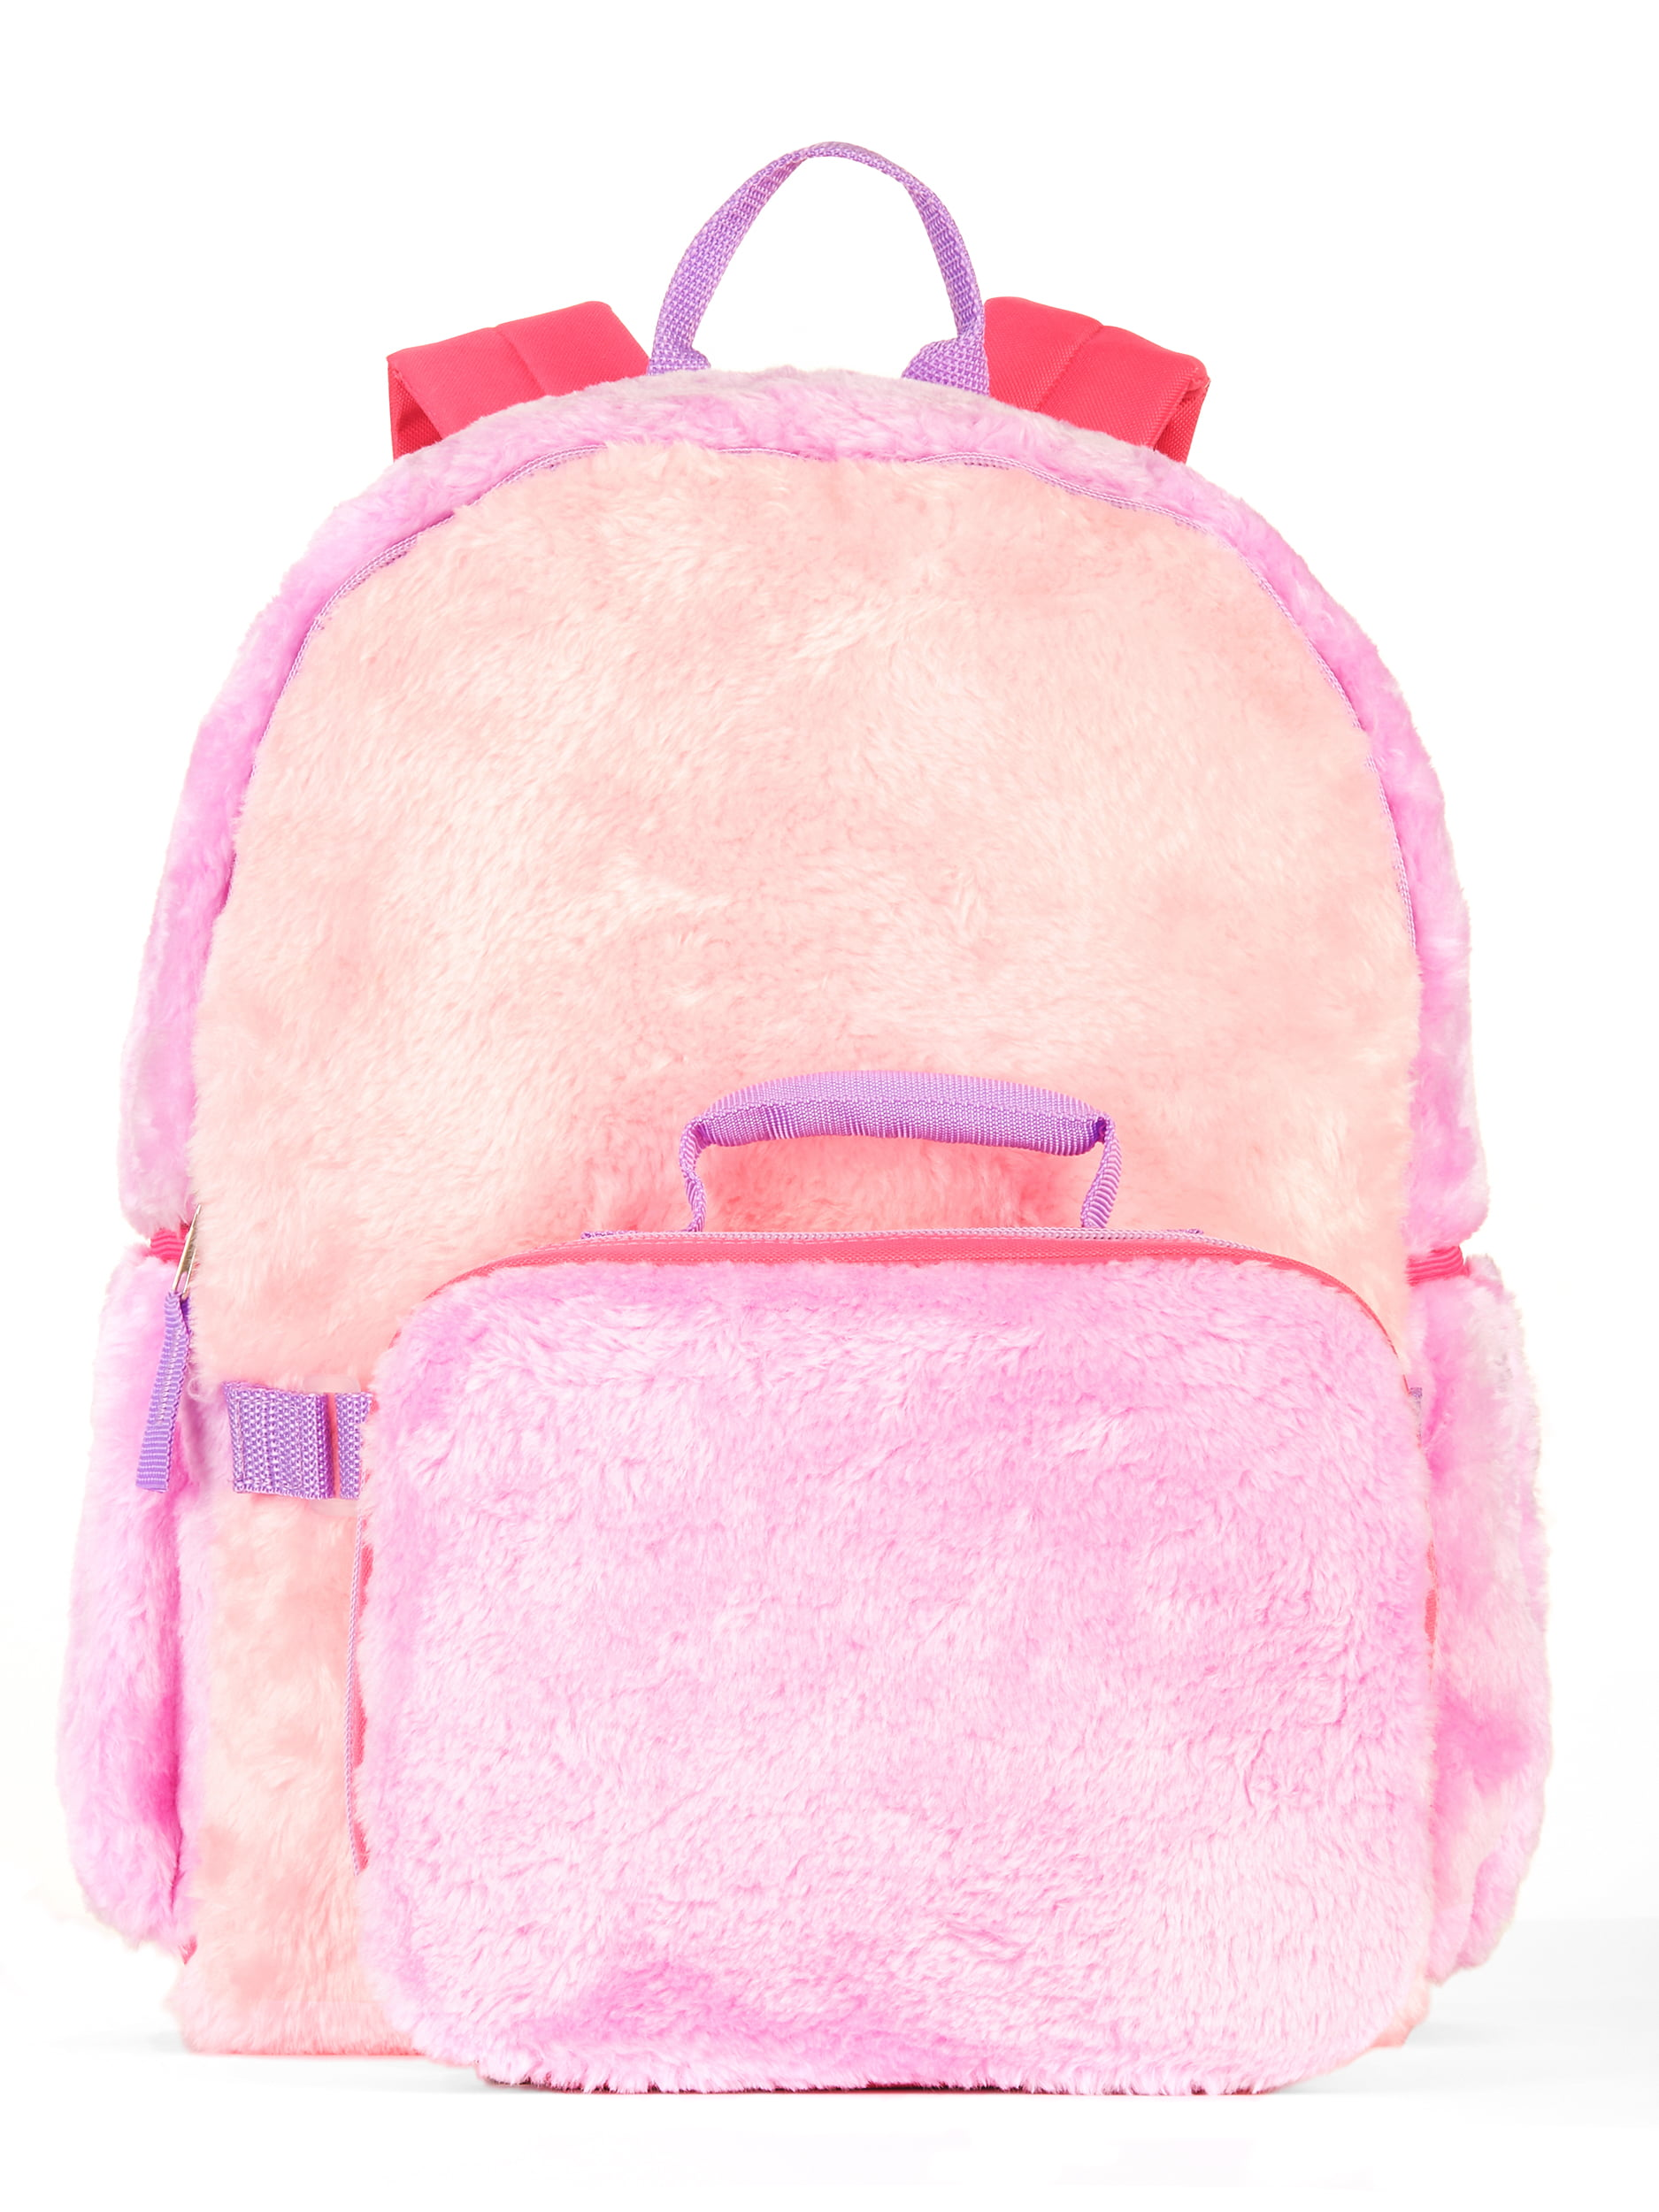 S Colorblock Fur Backpack With Lunch Bag